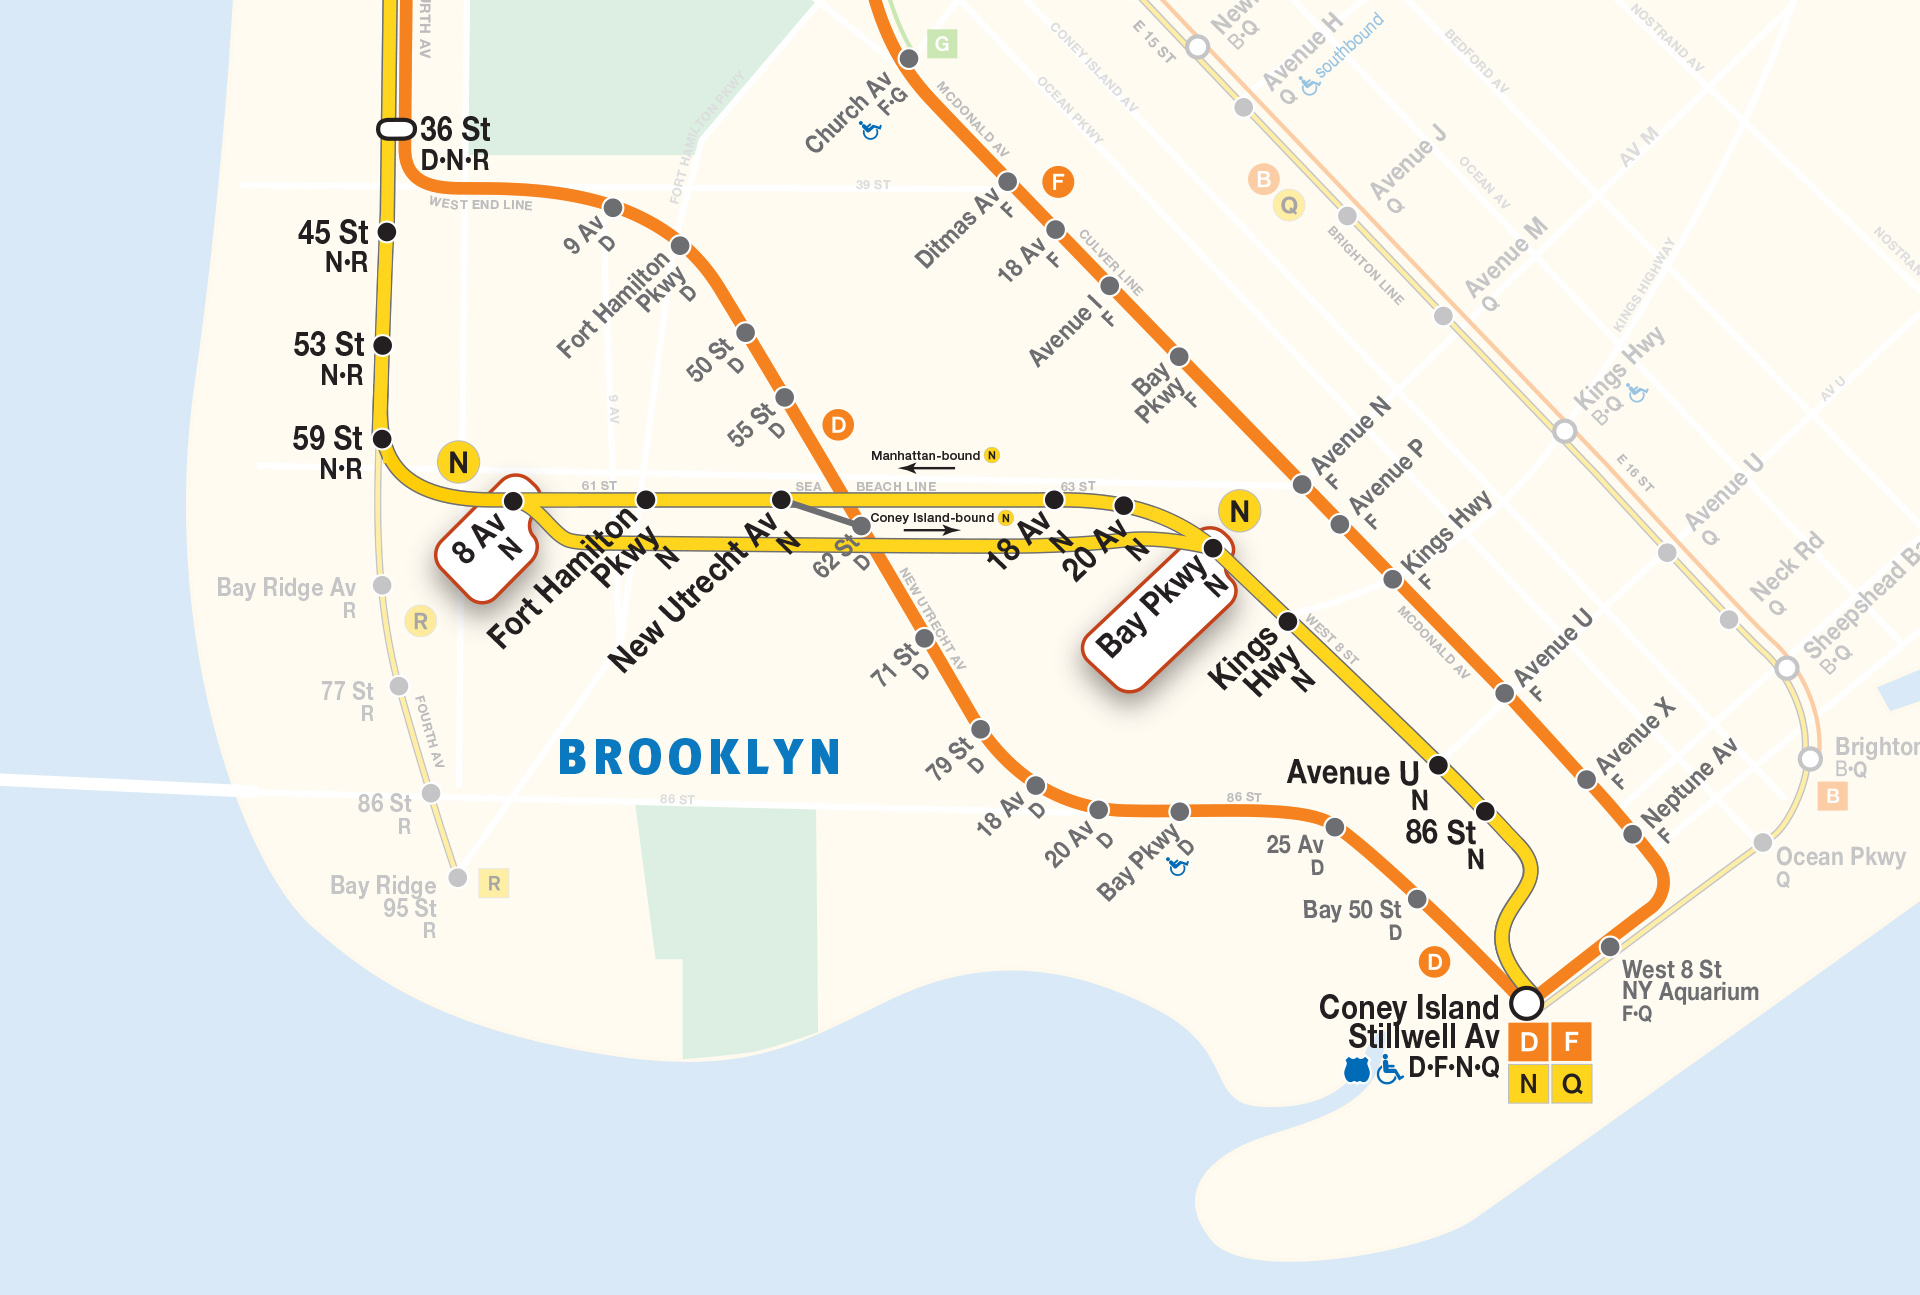 D Train To Coney Island Subway Map.N Sea Beach Line 2017